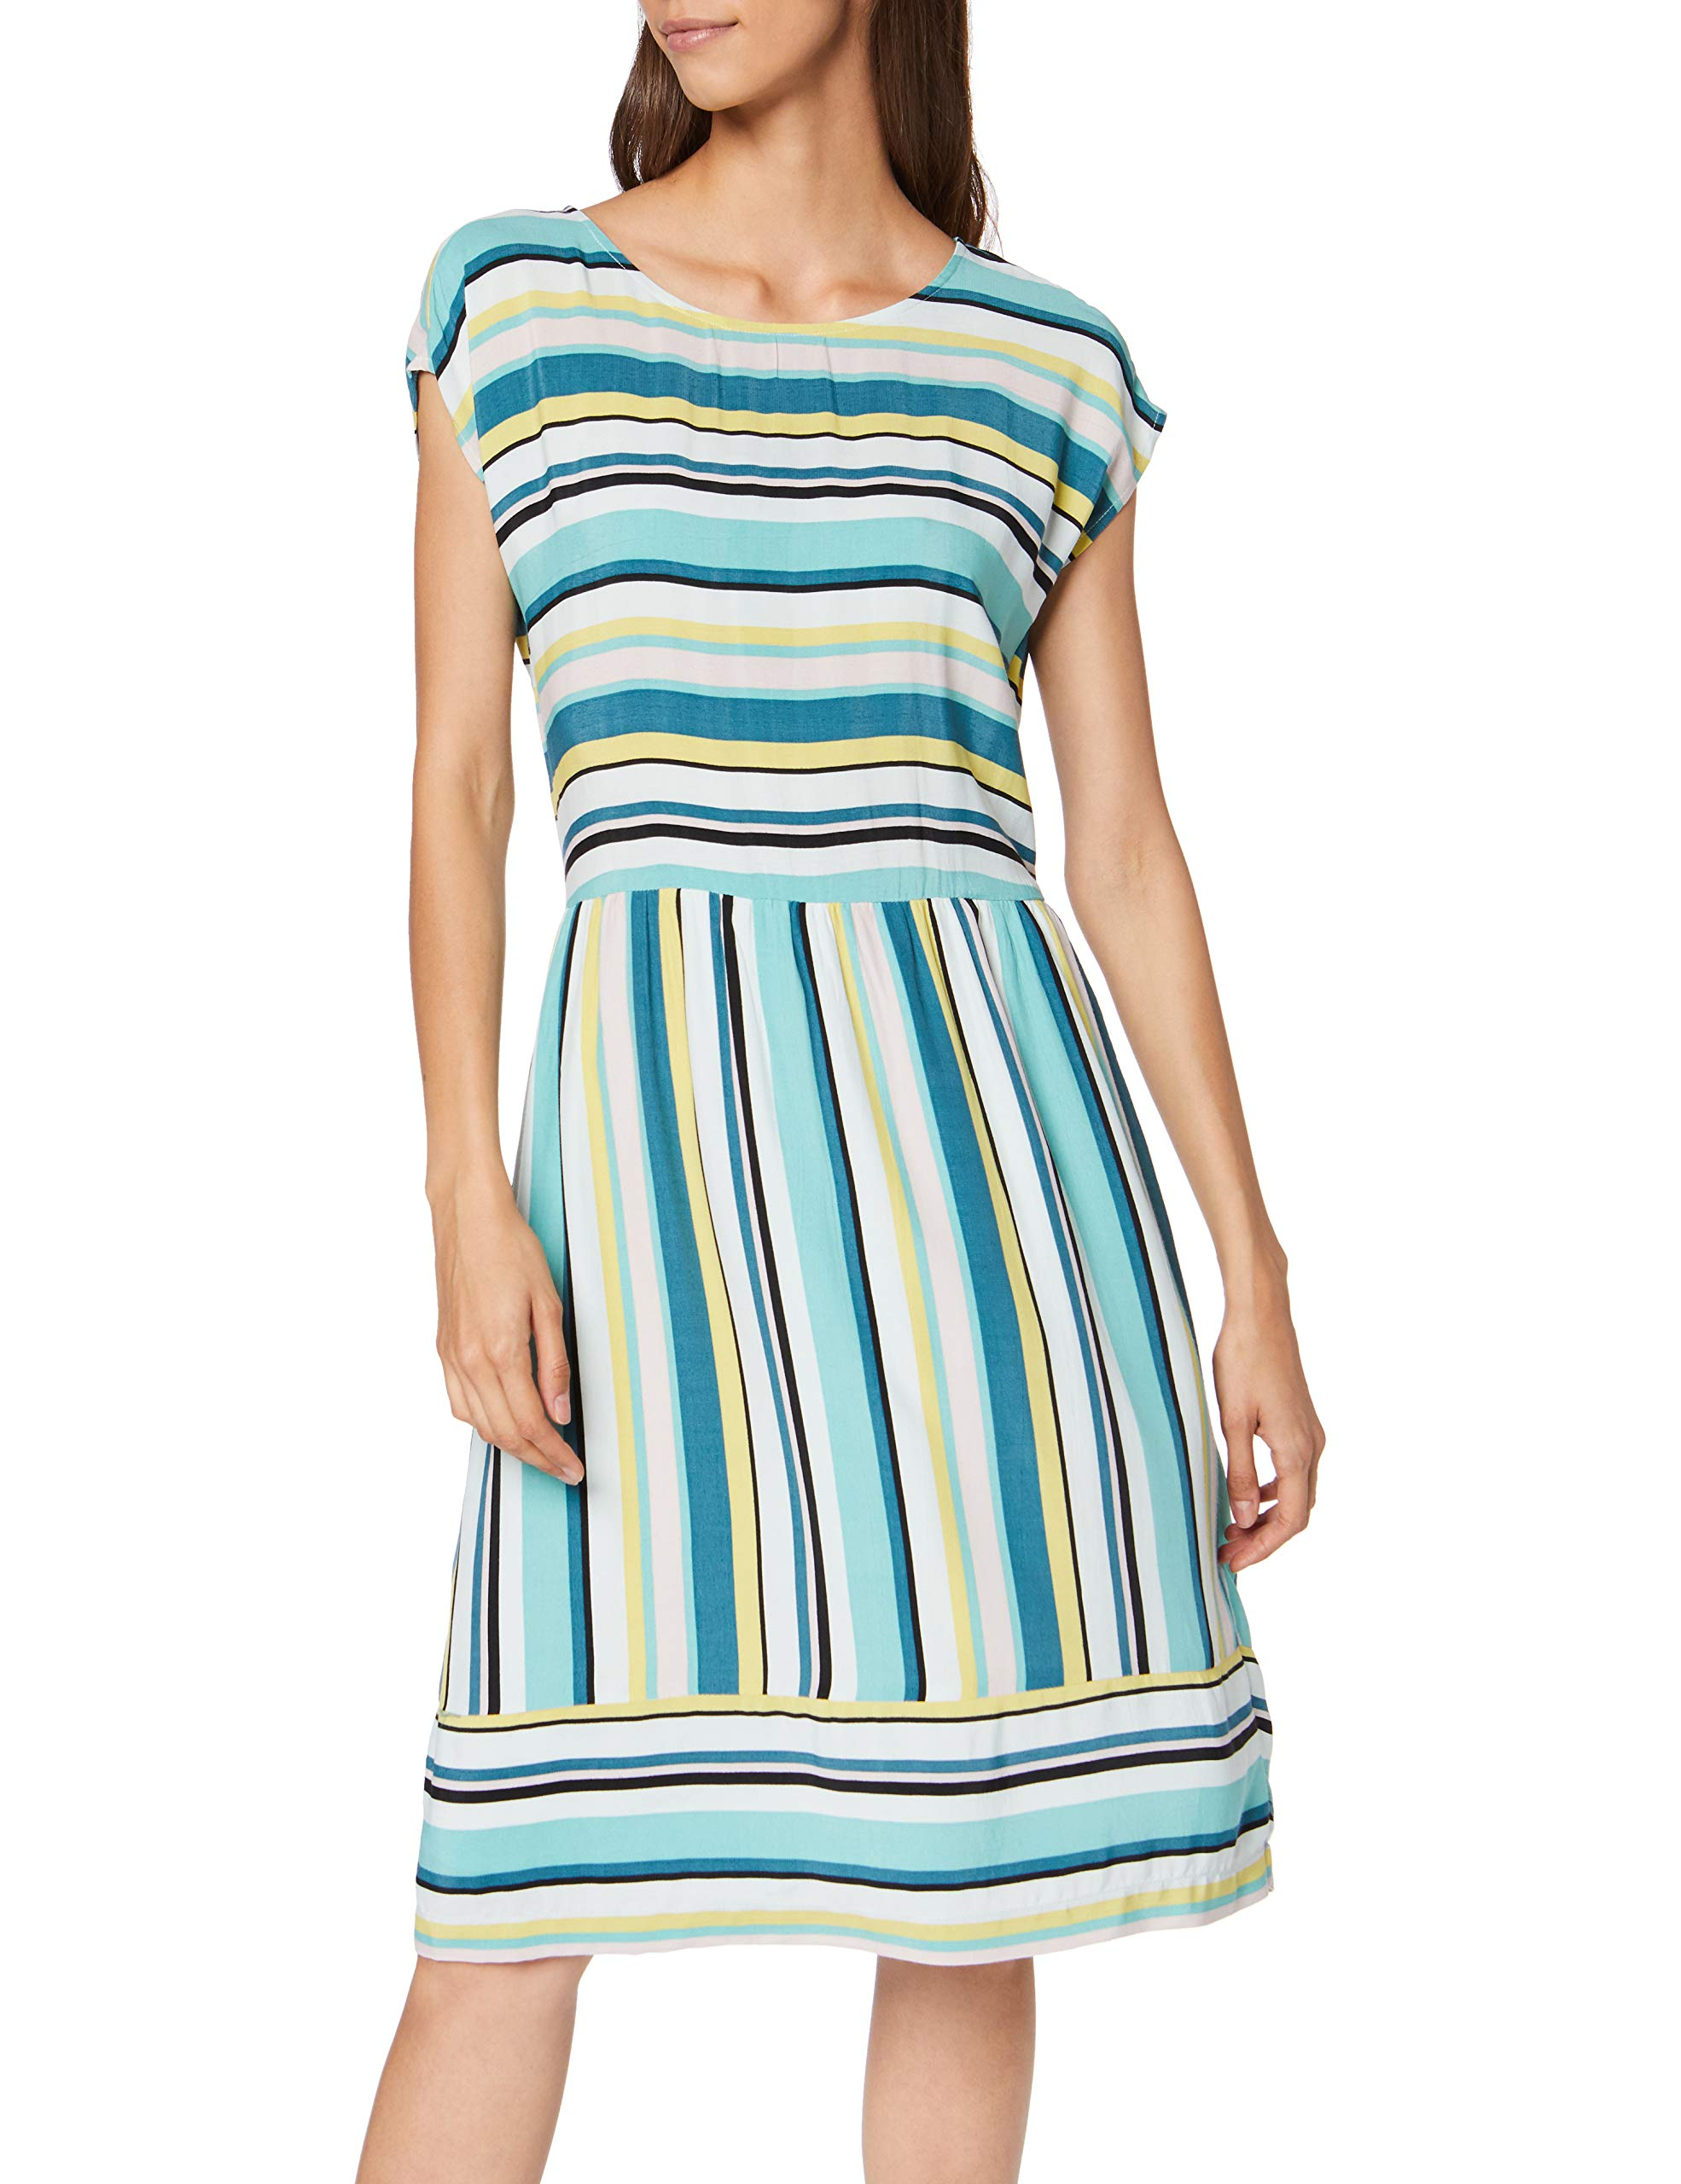 Gestreiftes RobeMulticolorewhite Colorful Kleid S 1863944taille Fabricant42Femme Tailor Casual Big Tom j4AL35R